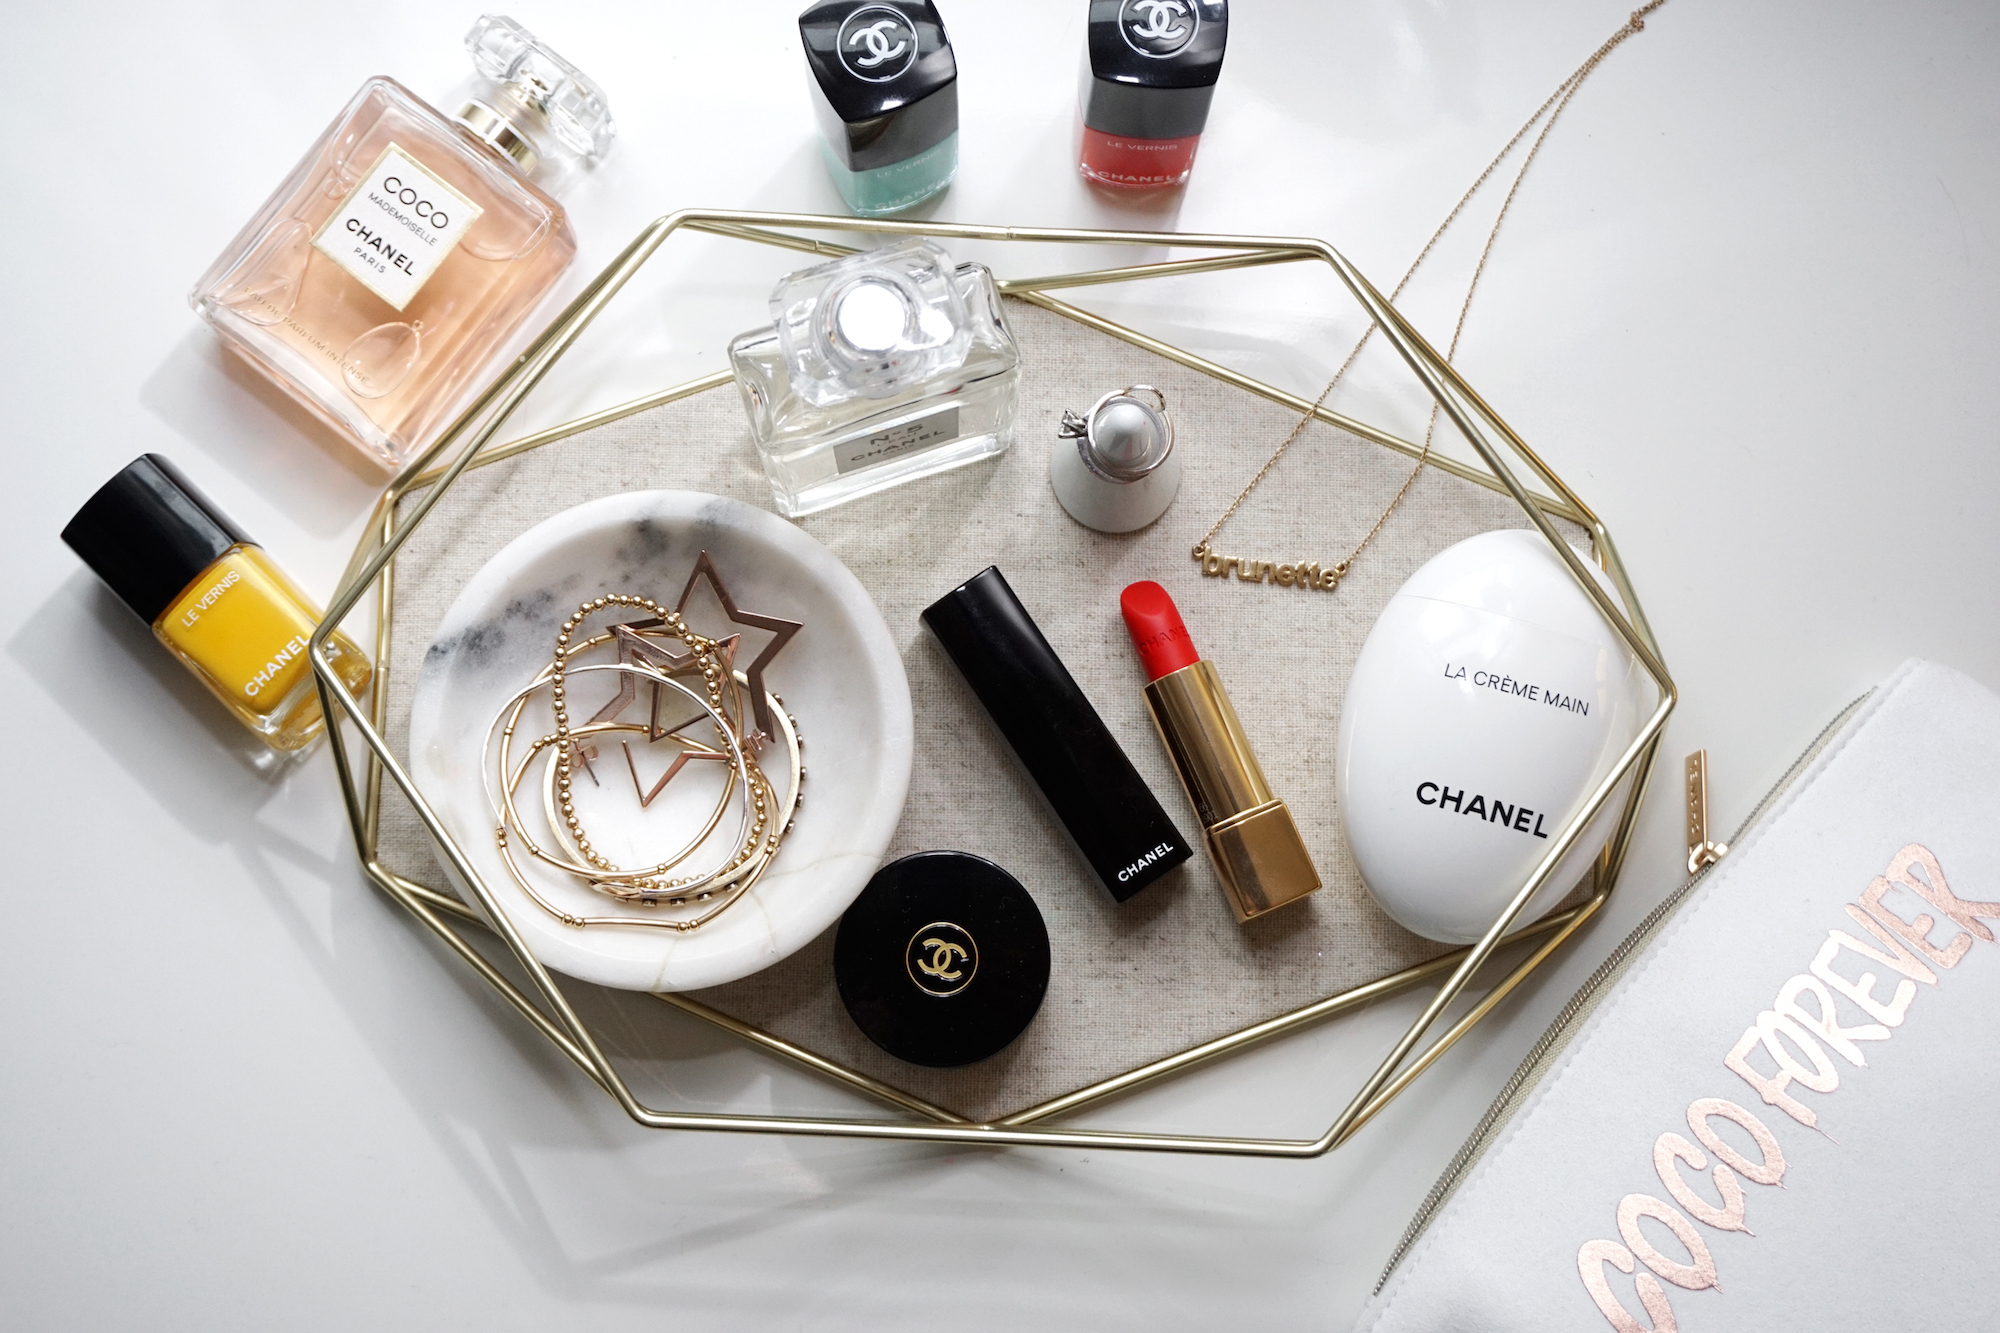 What's on my desk: an Umbra tray full of Chanel makeup.